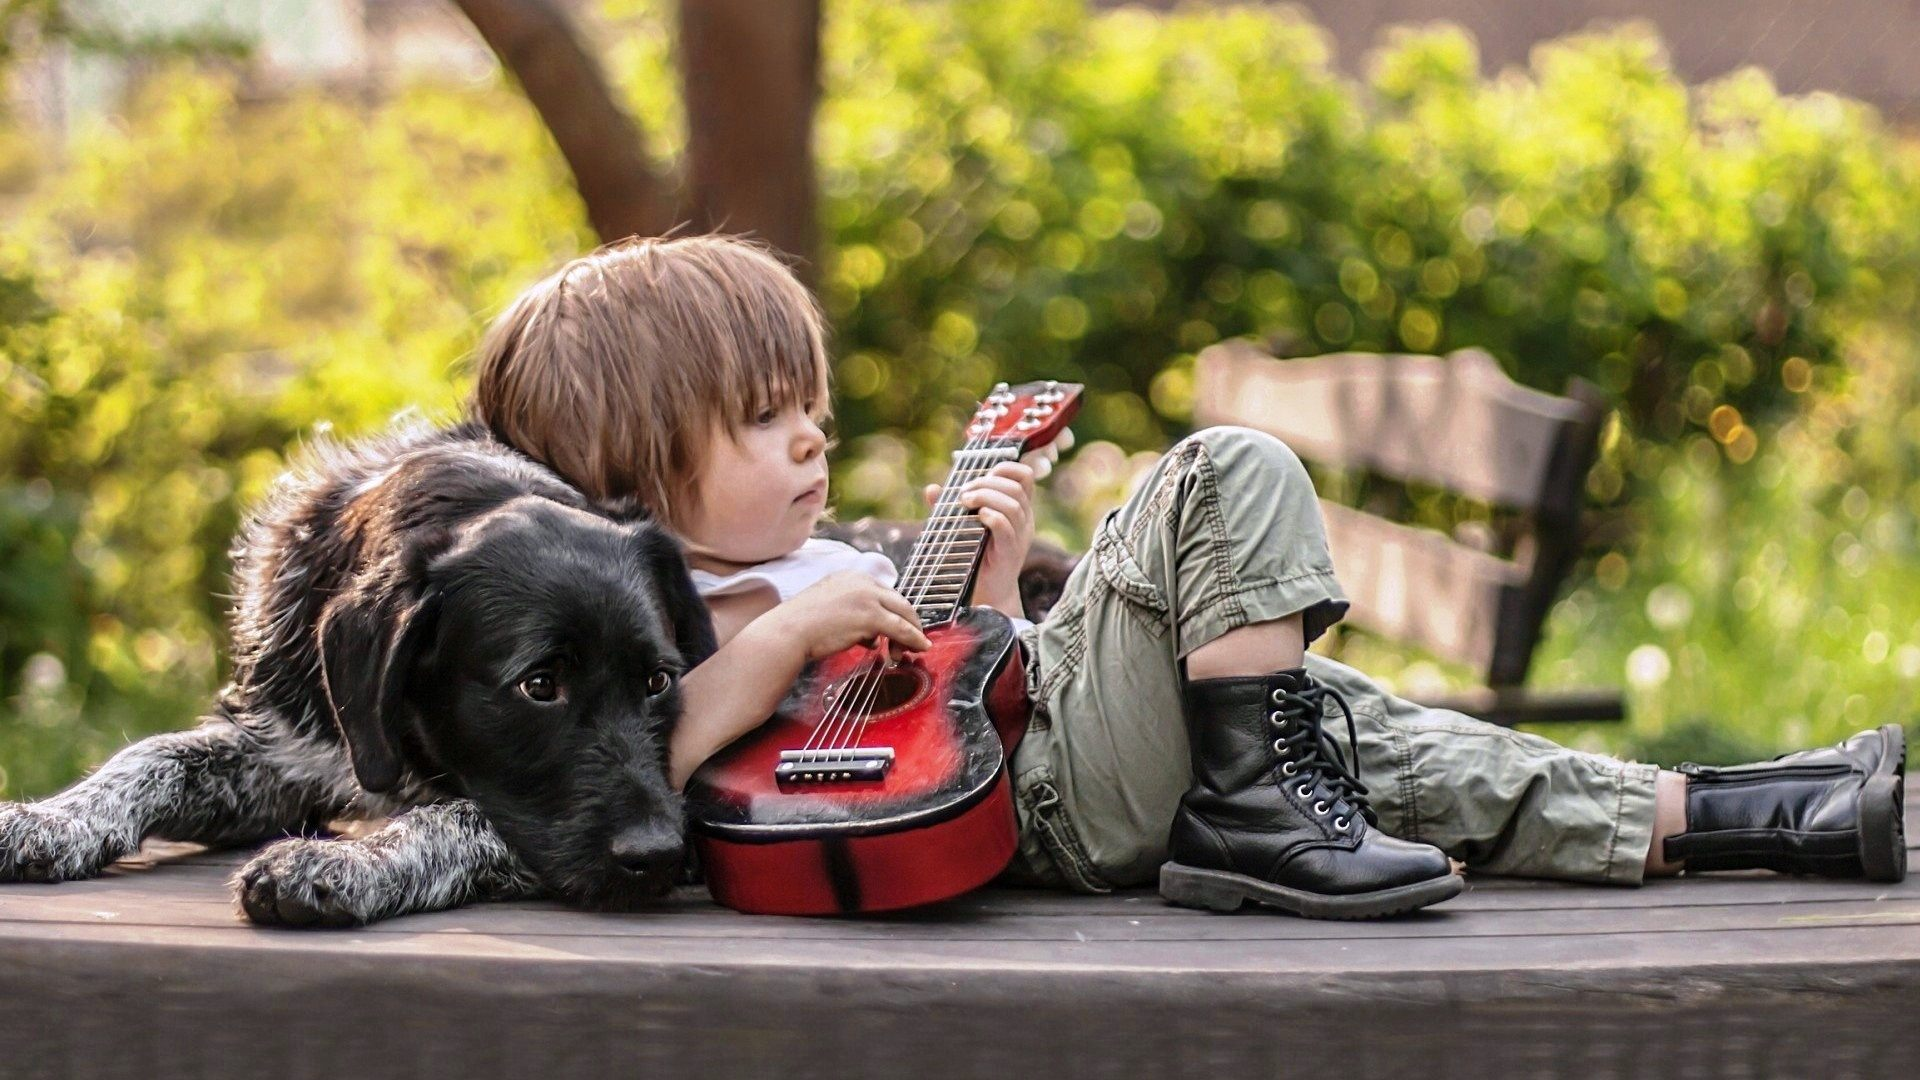 Boy With Guitar HD Wallpaper